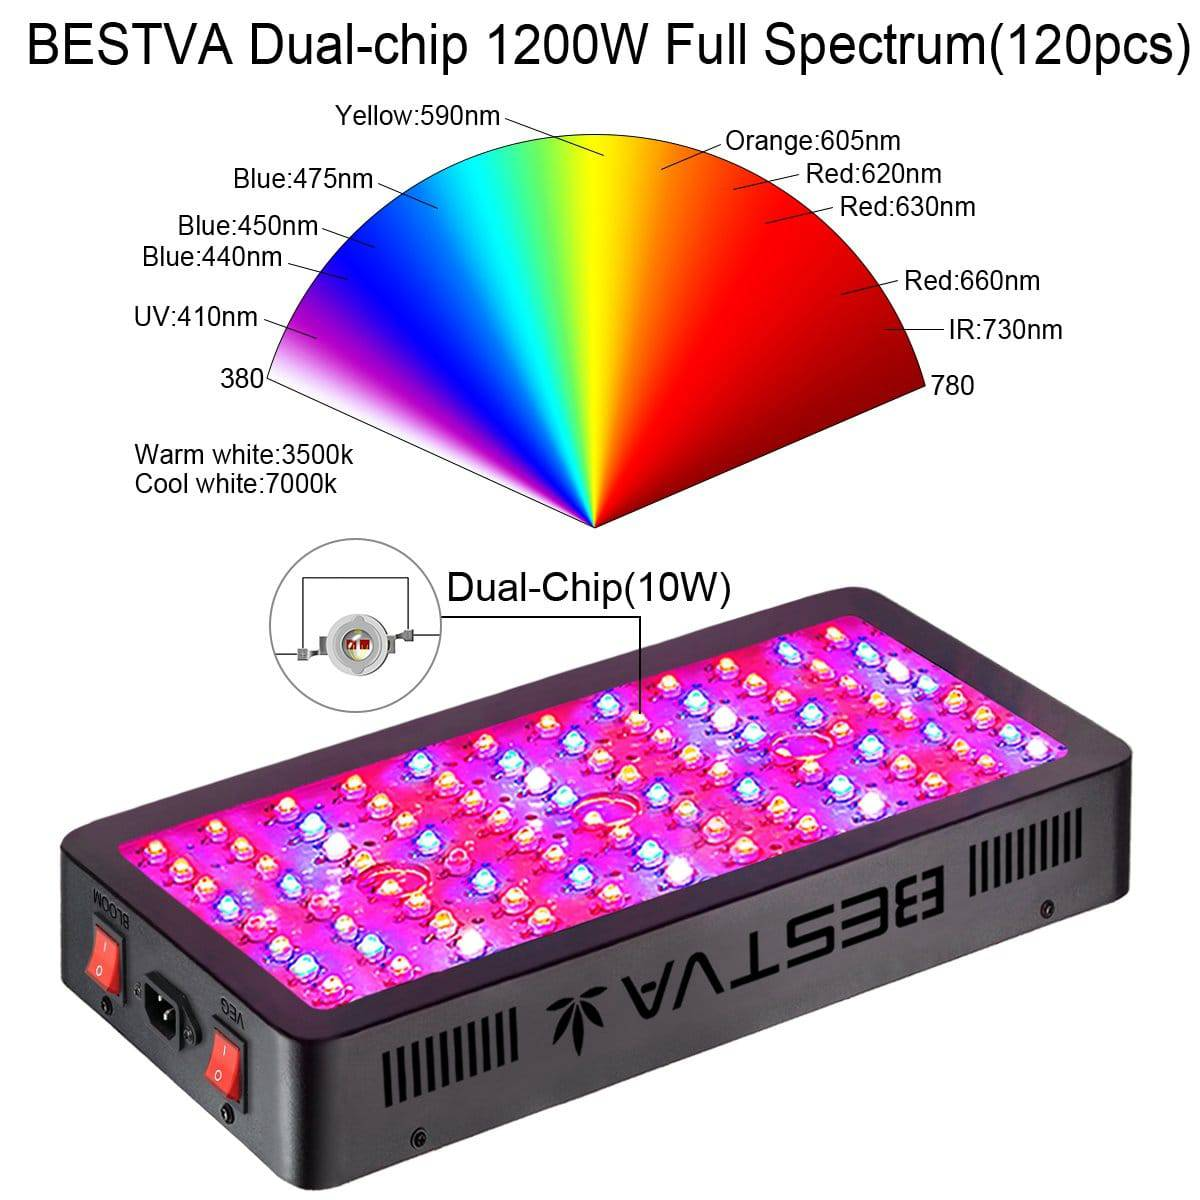 BESTVA 1200W Double Chips LED Grow Light Full Spectrum 12 Band Grow Lamp for Greenhouse Hydroponic Indoor Plants Veg and Flower - BESTVALED